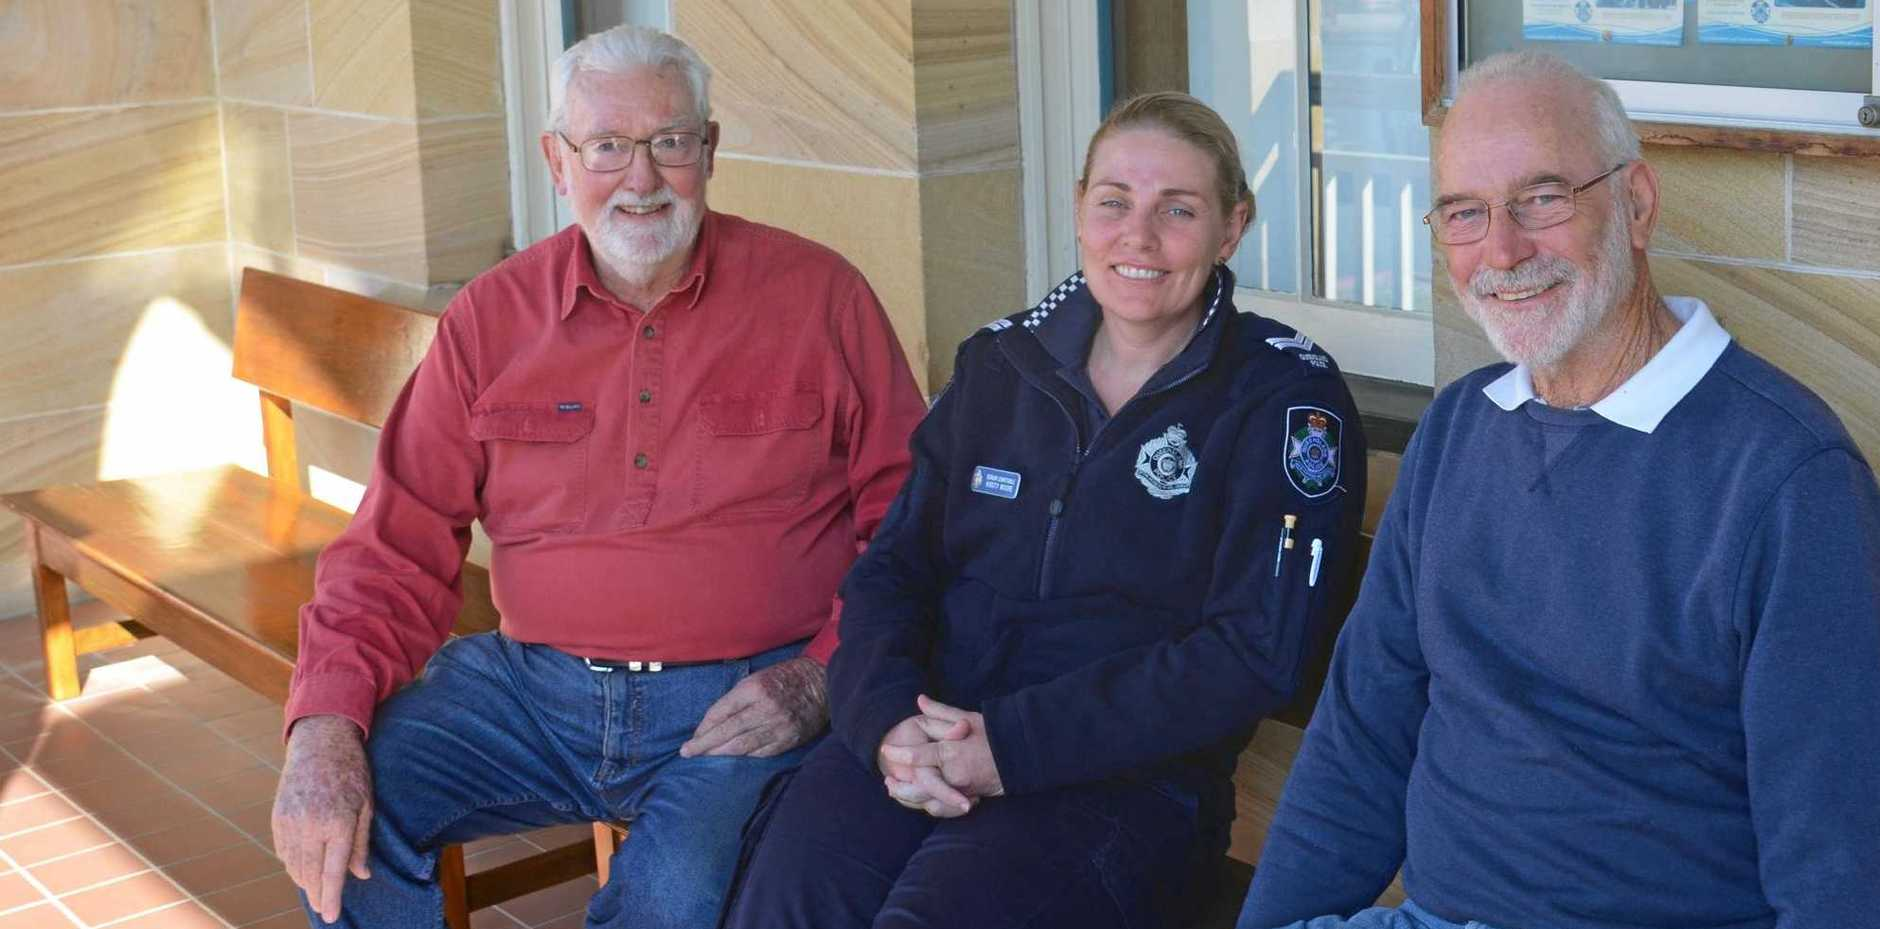 GOOD AS NEW: Warwick Men's Shed members Ian Stevens (left) and John Fogarty (right) were happy to help out police officers like Kirsty Moore.